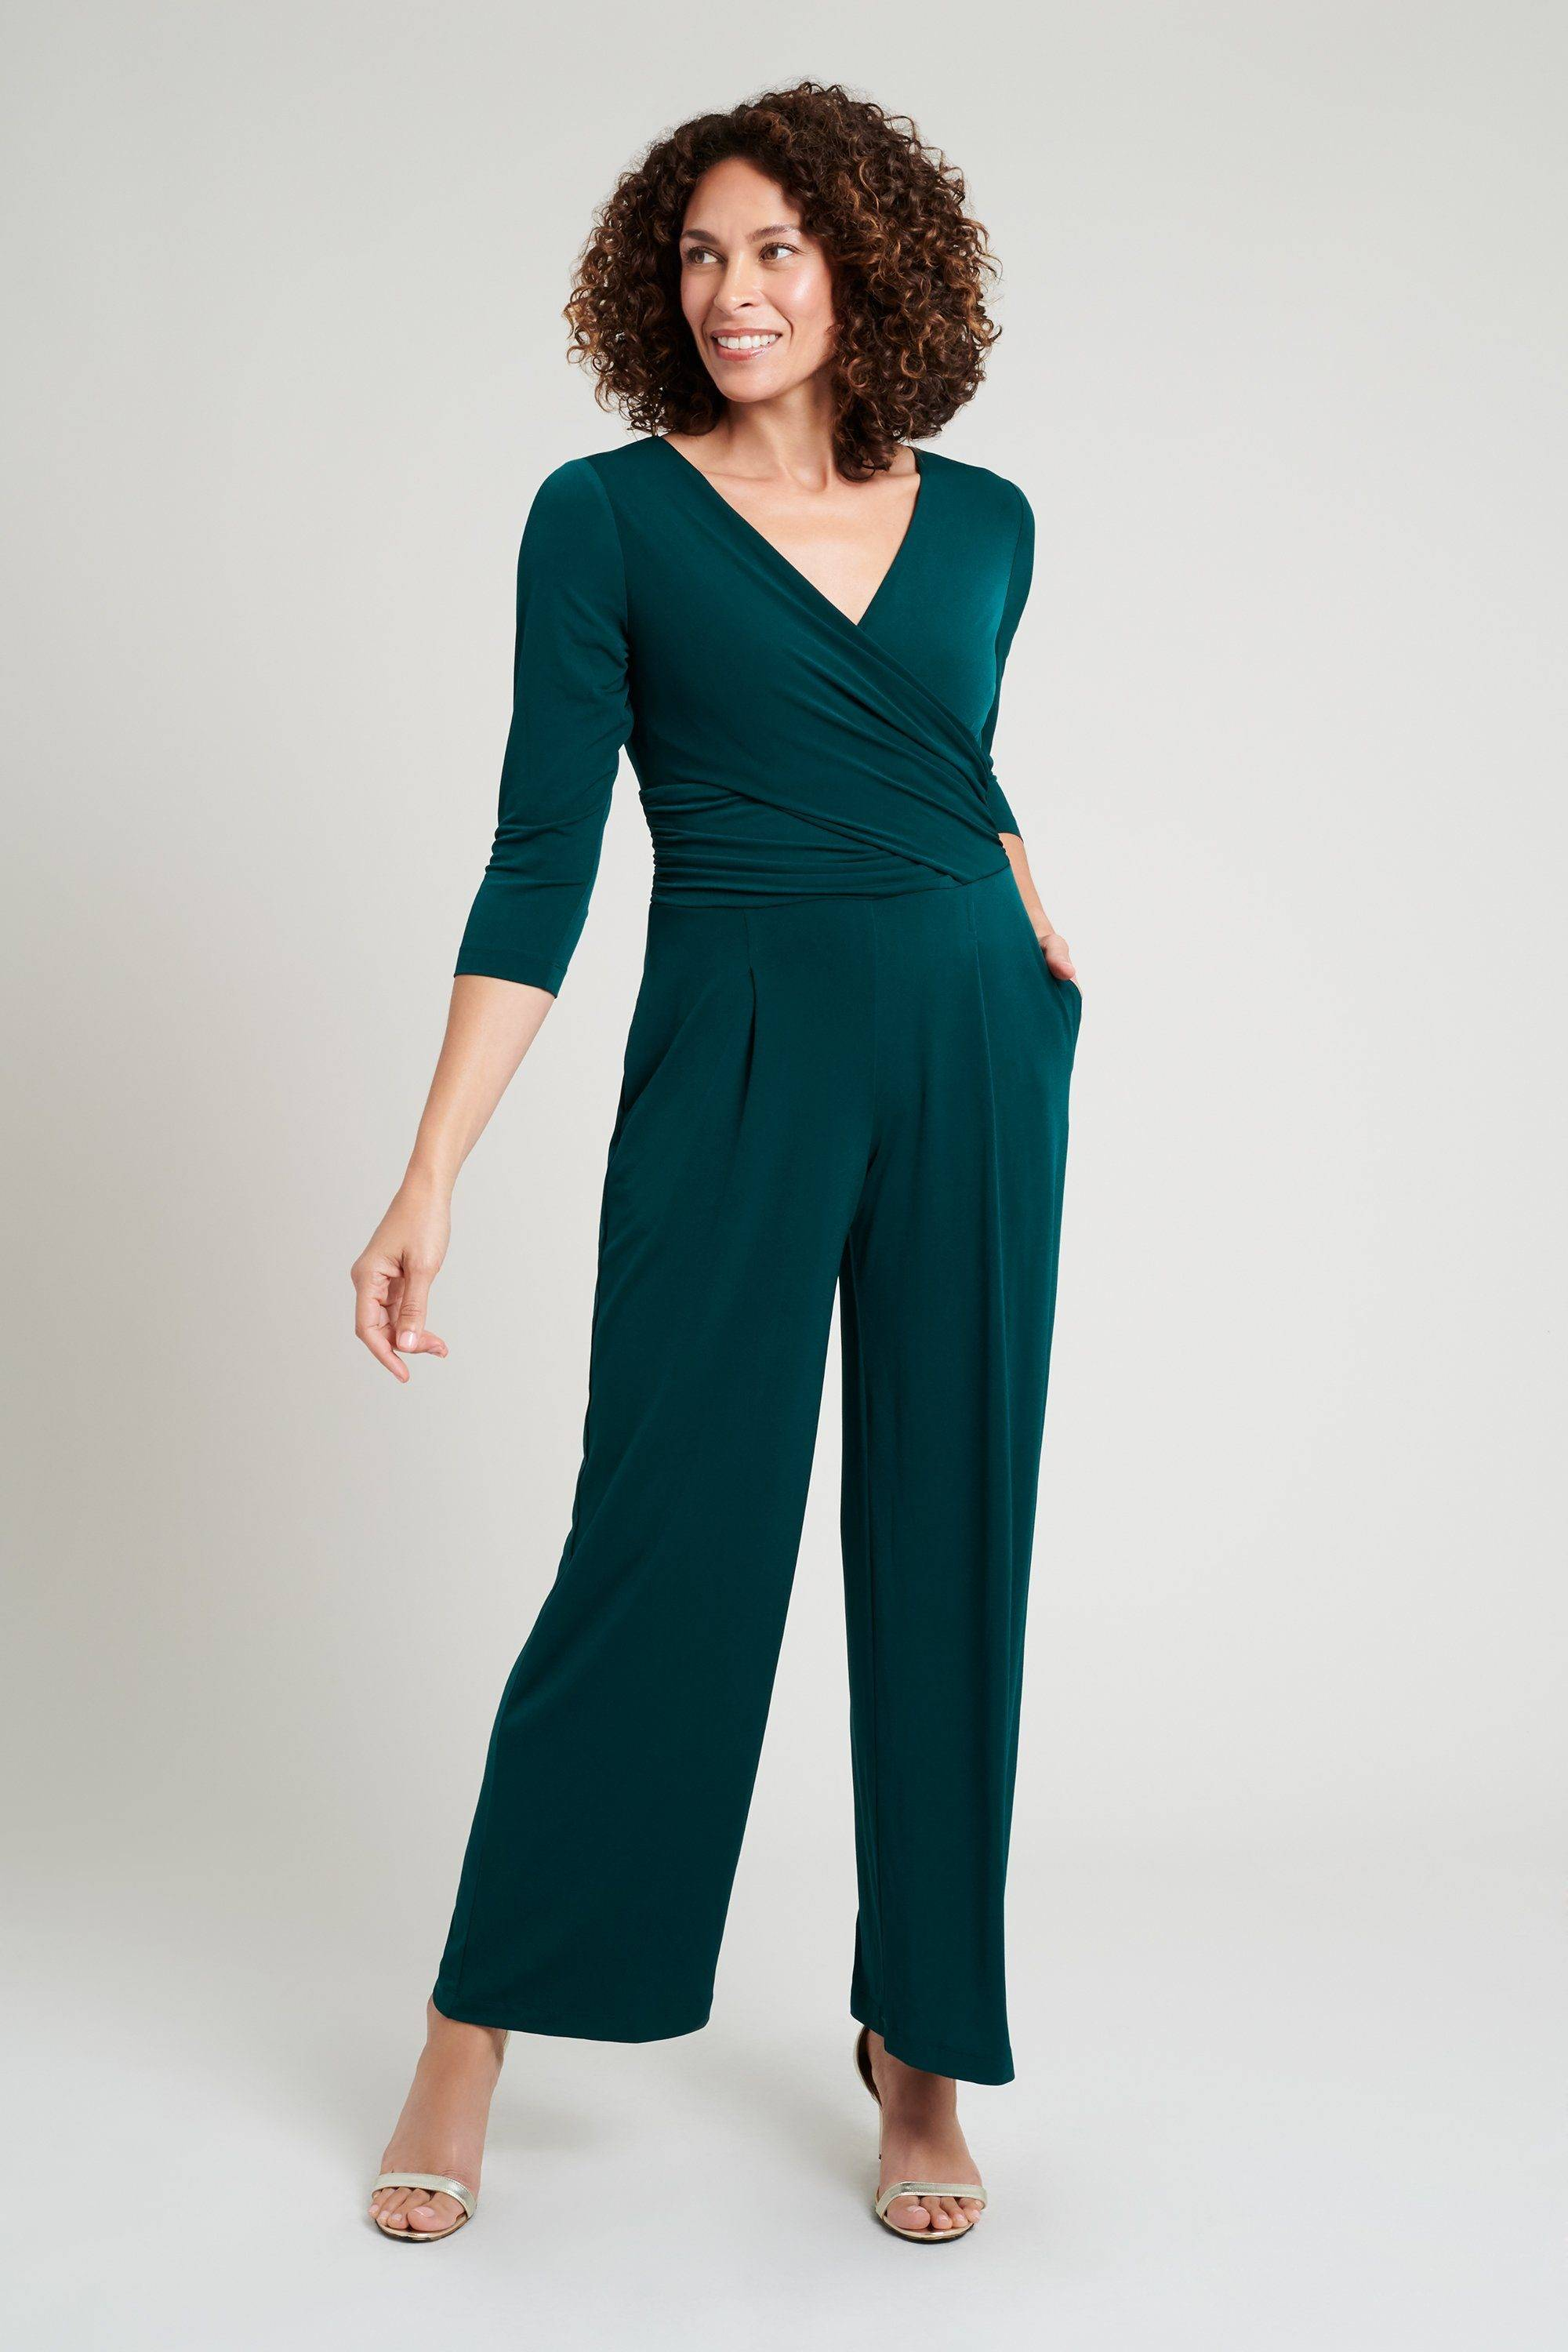 green-jumpsuit-romper-teal-womens-connected-apparel